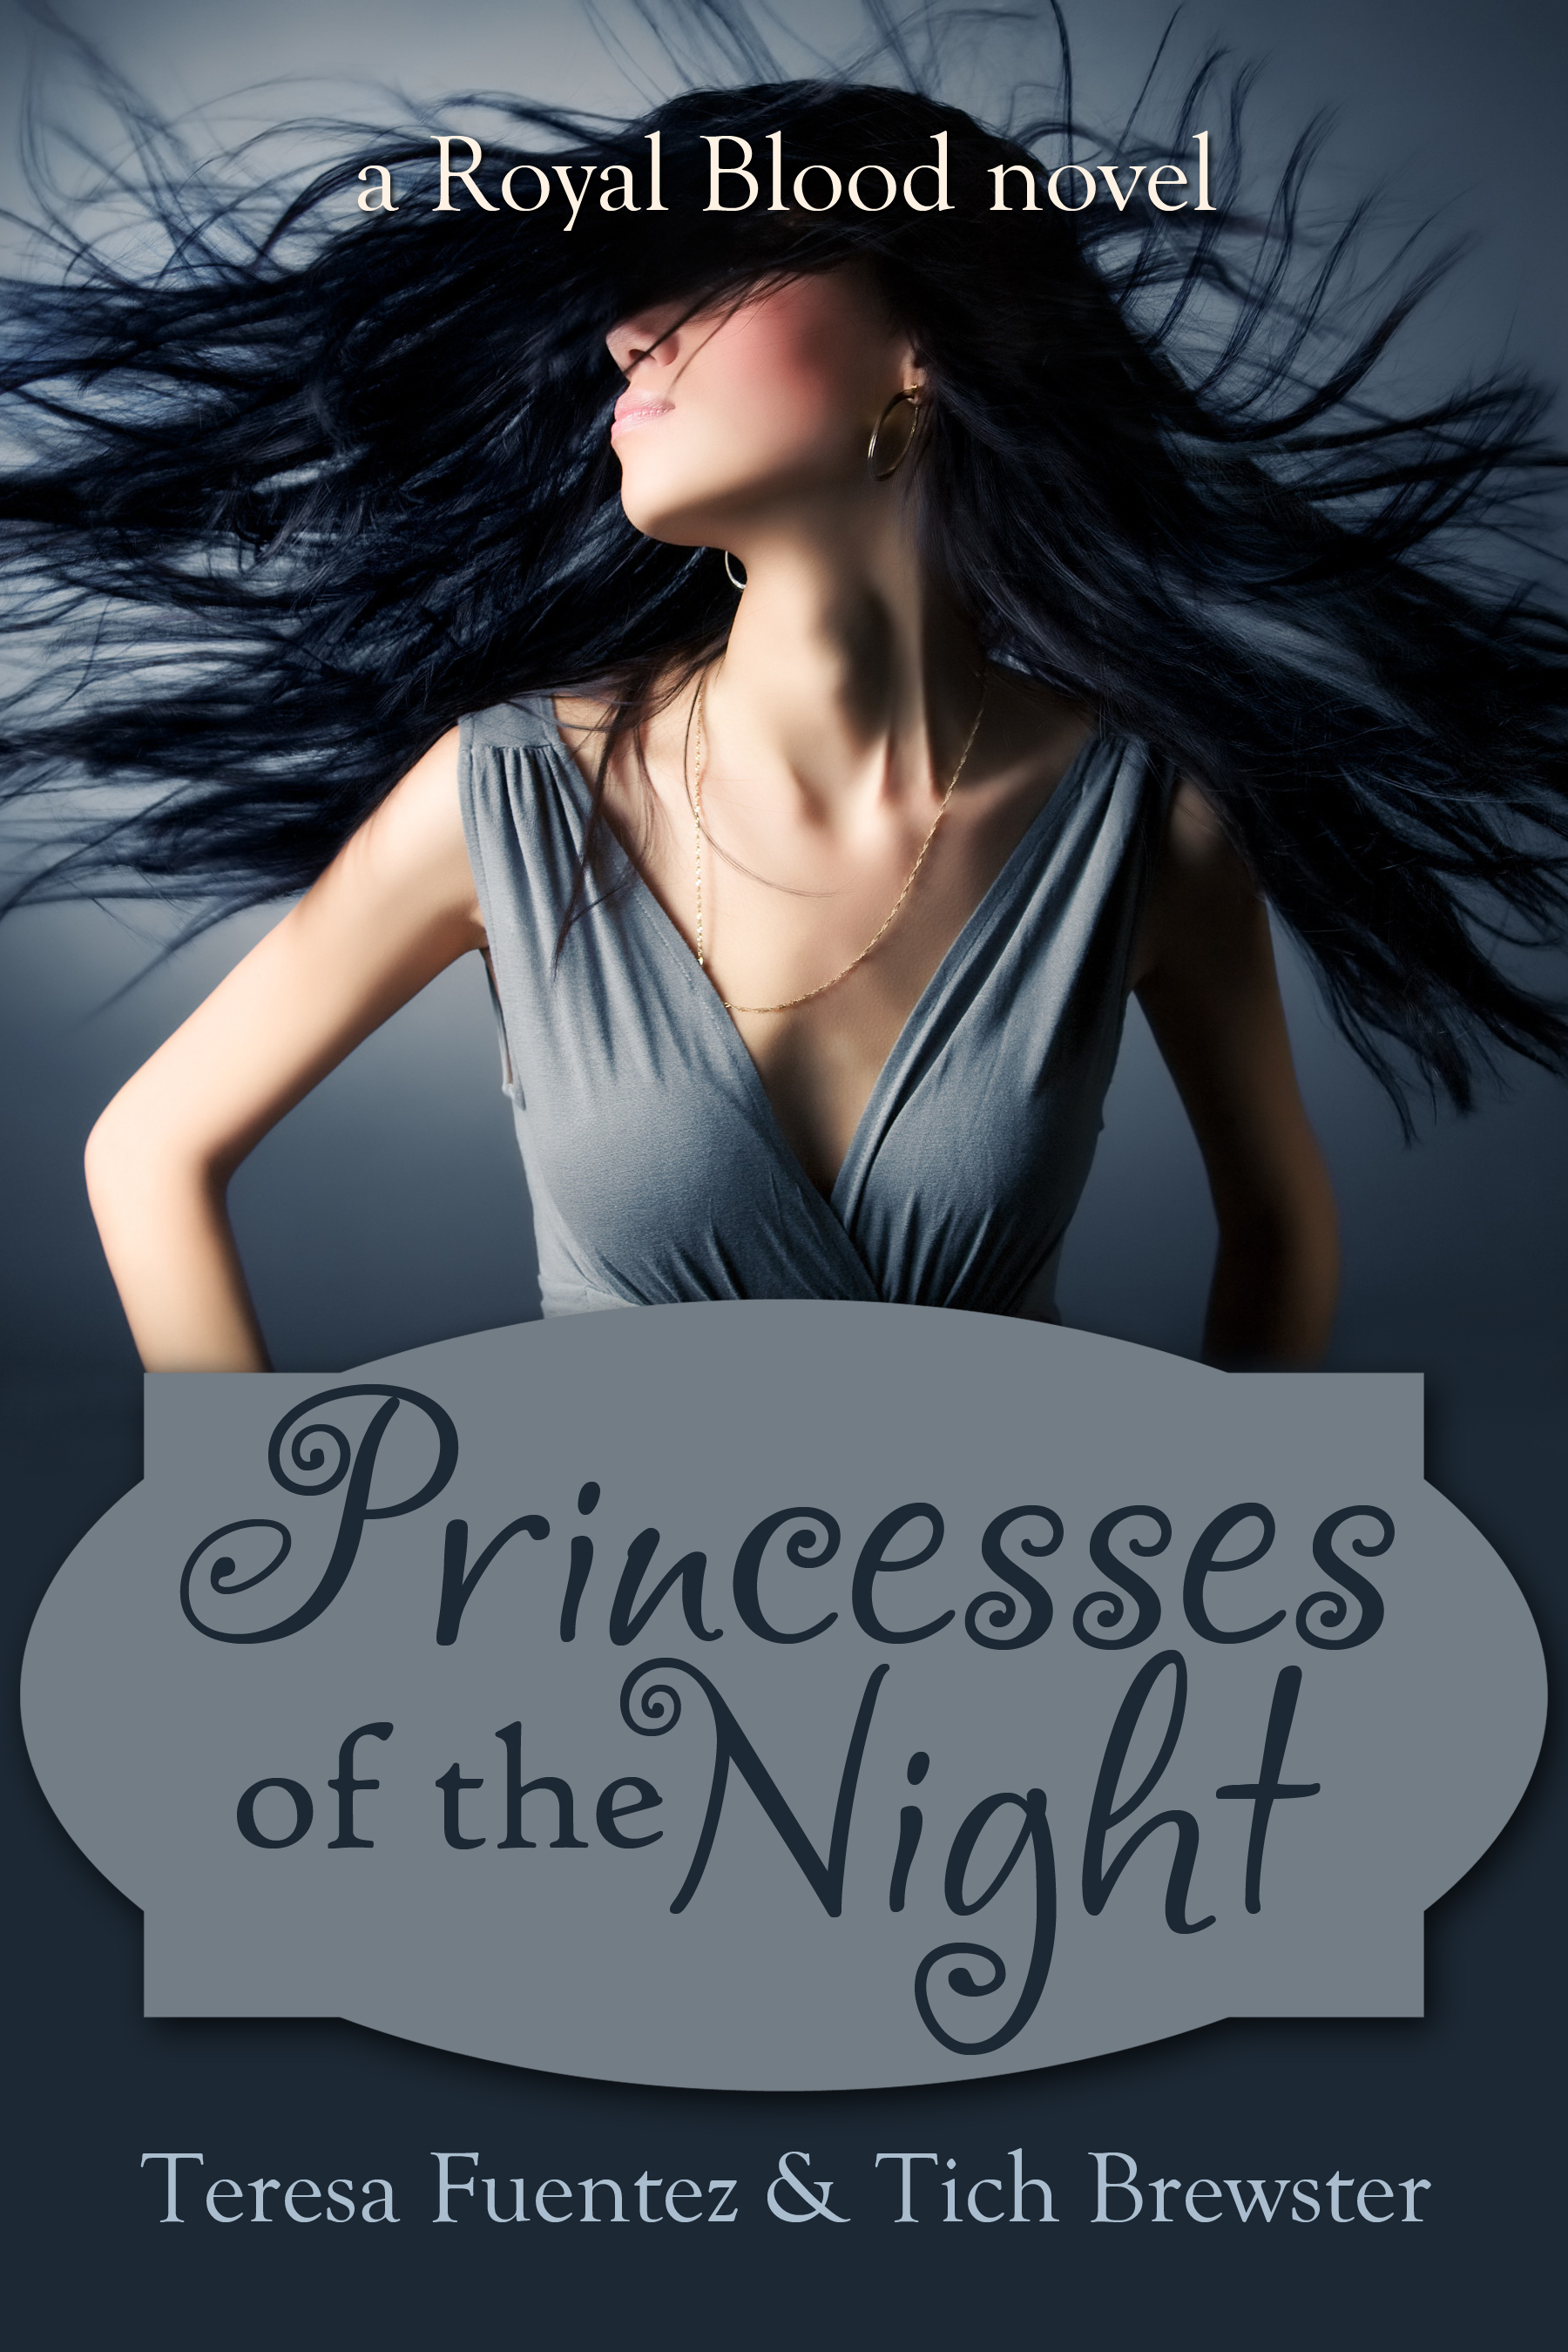 Princesses of the Night